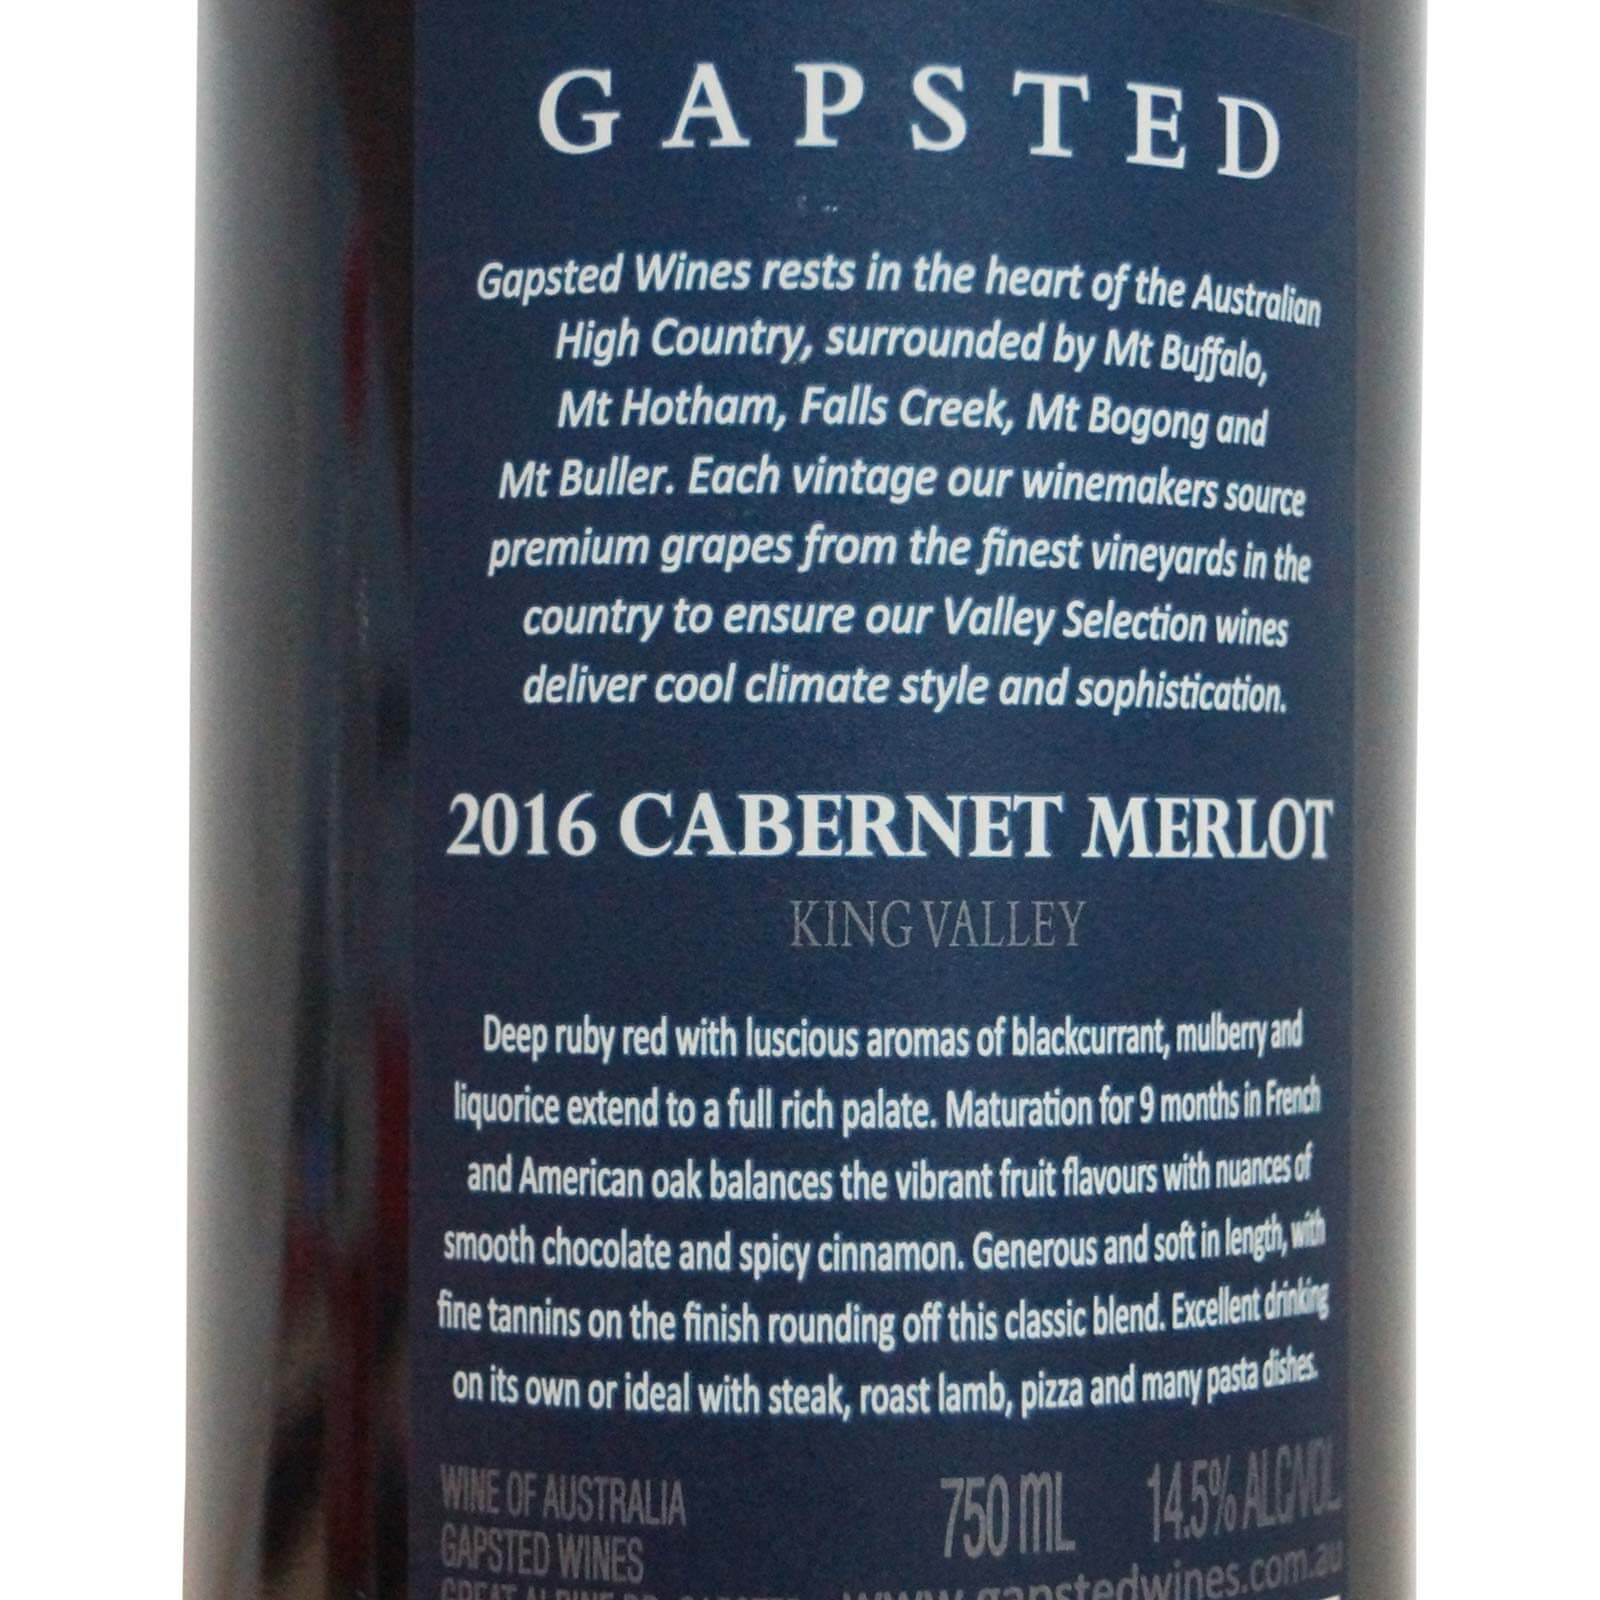 products-gapsted-cabernet-merlot-2016-e